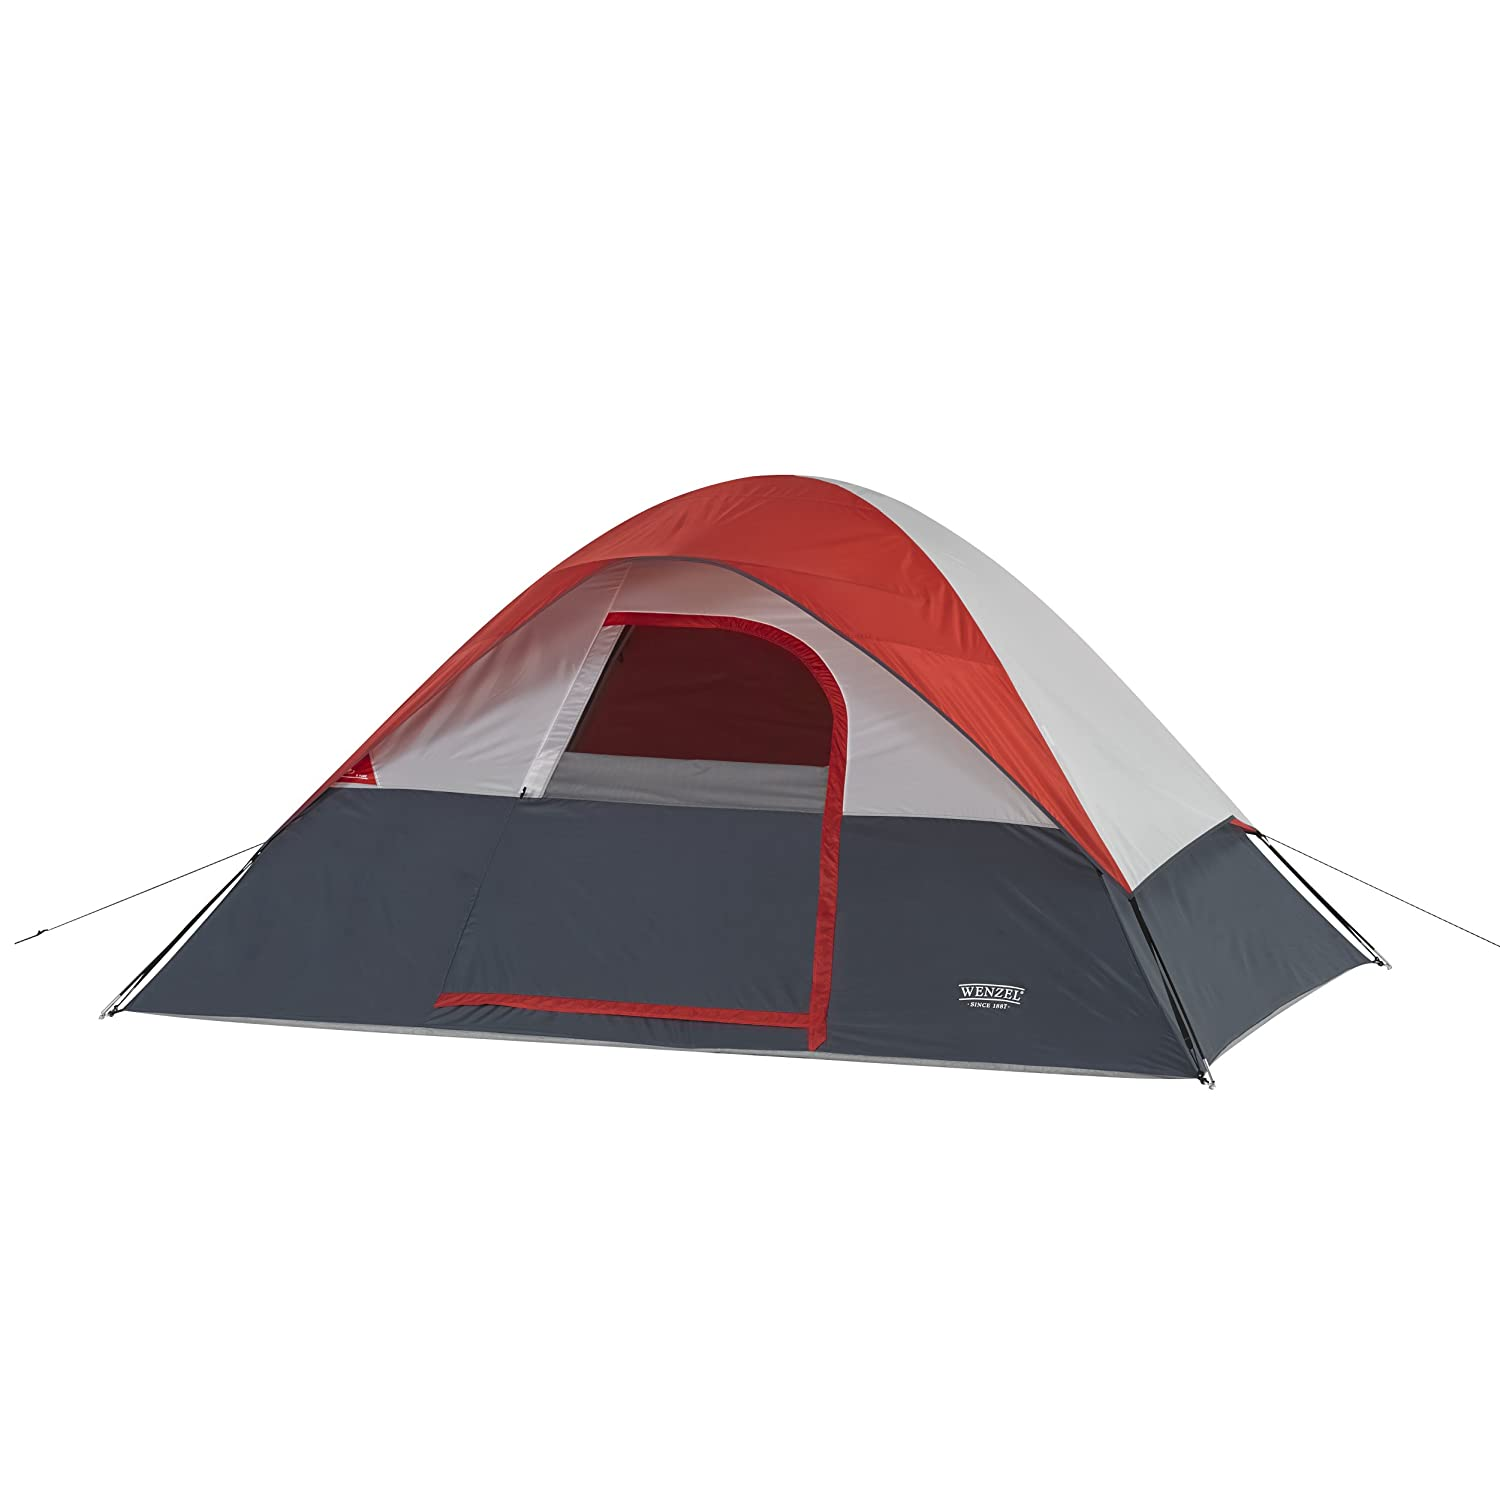 Wenzel Dome Tent 5 Person